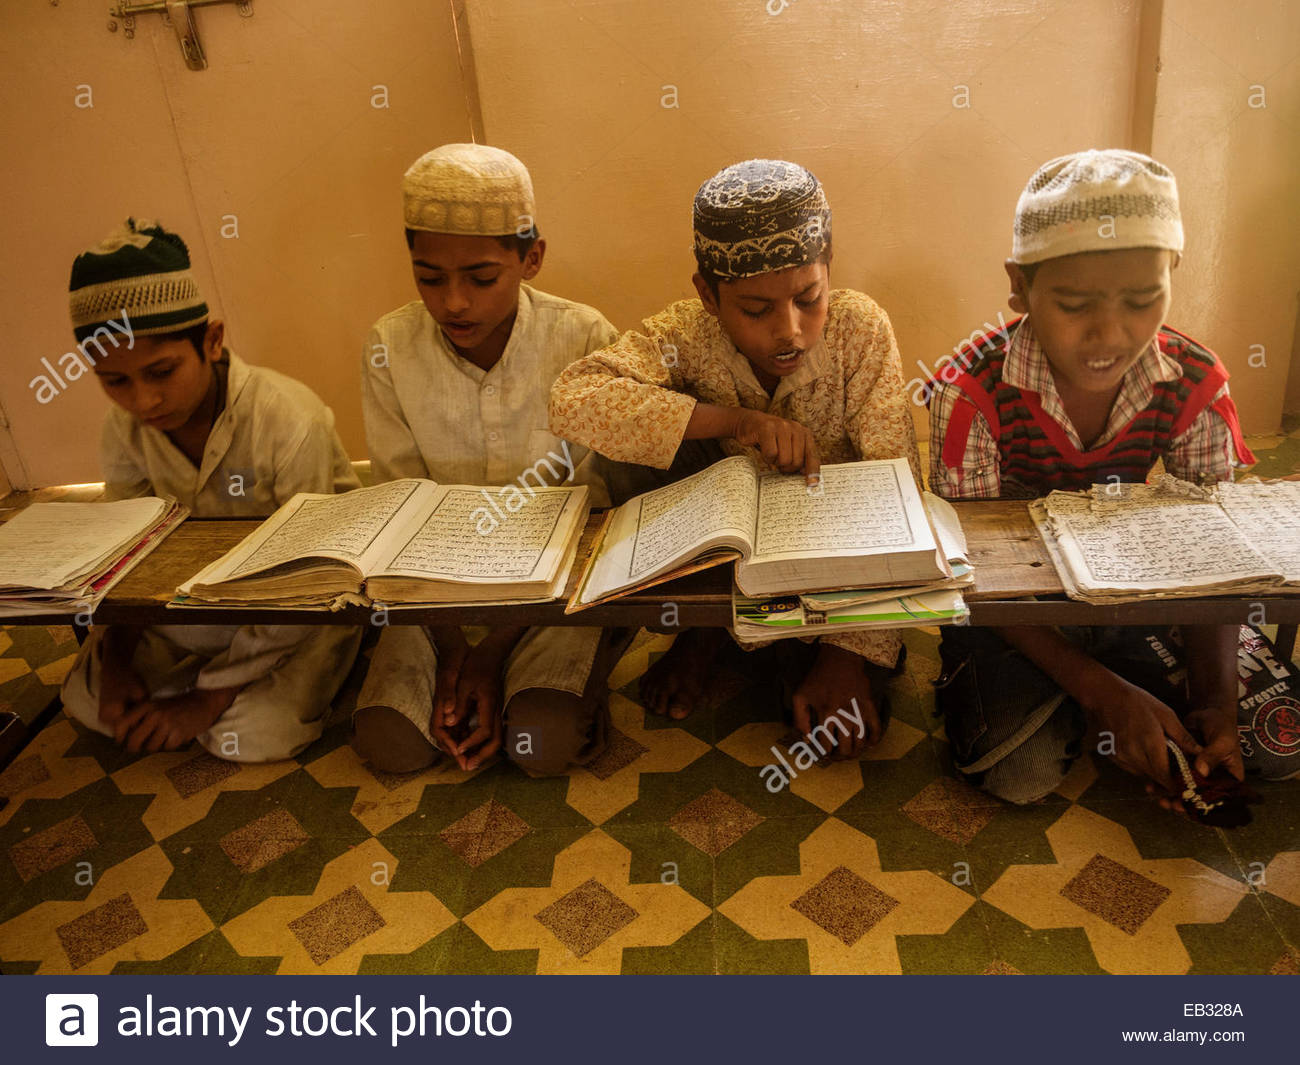 a study of islamic religion This free islamic course is designed to teach you basic islamic knowledge and muslim beliefs study islam online free, learn the true and beautiful teachings of islam learn islam and study islam from the comfort of your own homes.